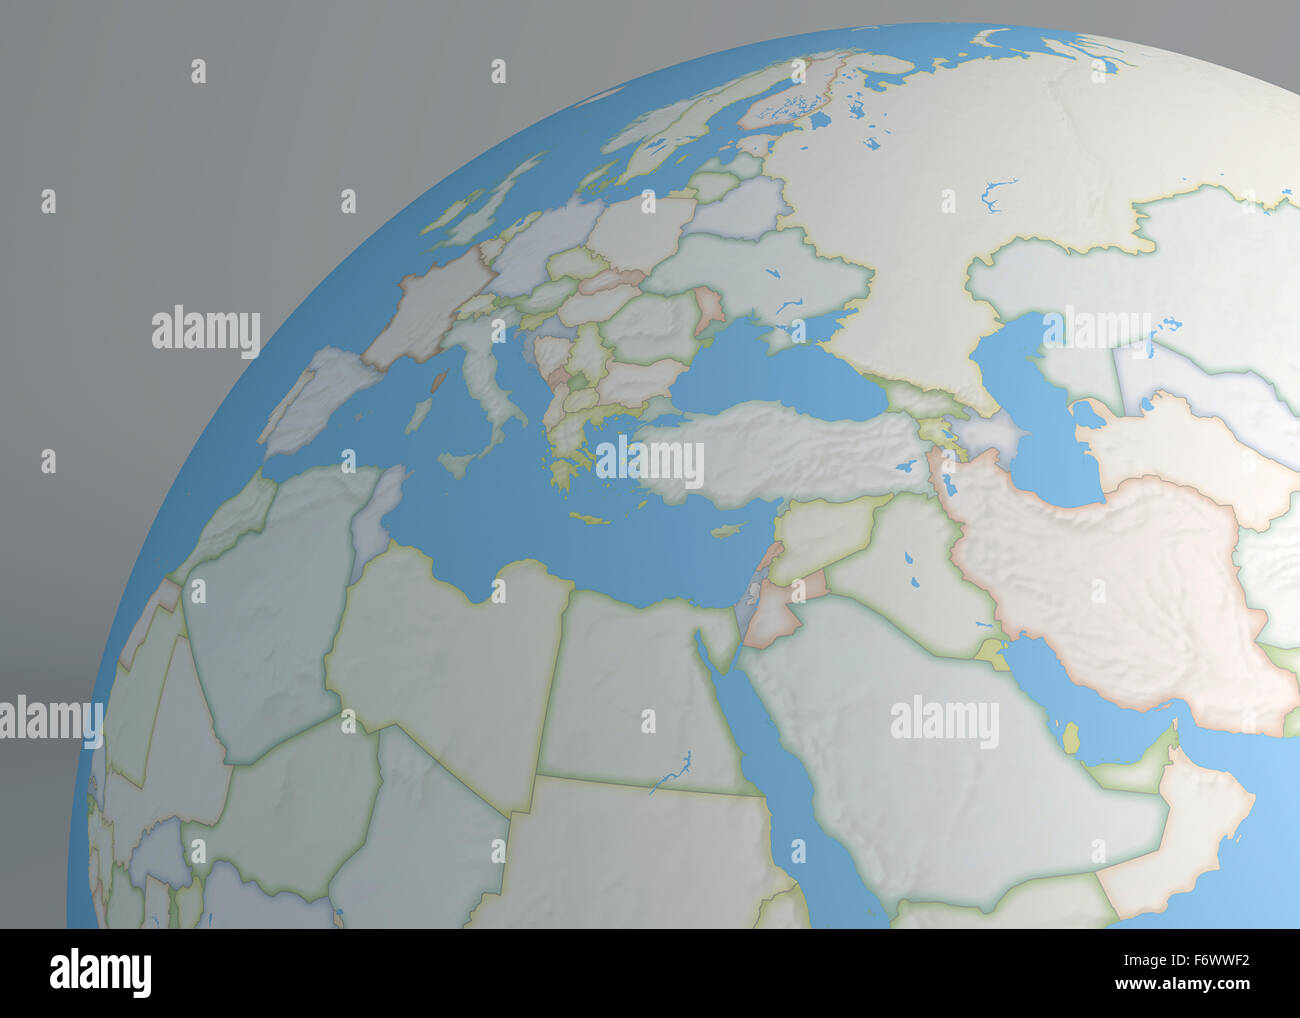 World map of middle east europe and north africa stock photo world map of middle east europe and north africa gumiabroncs Image collections